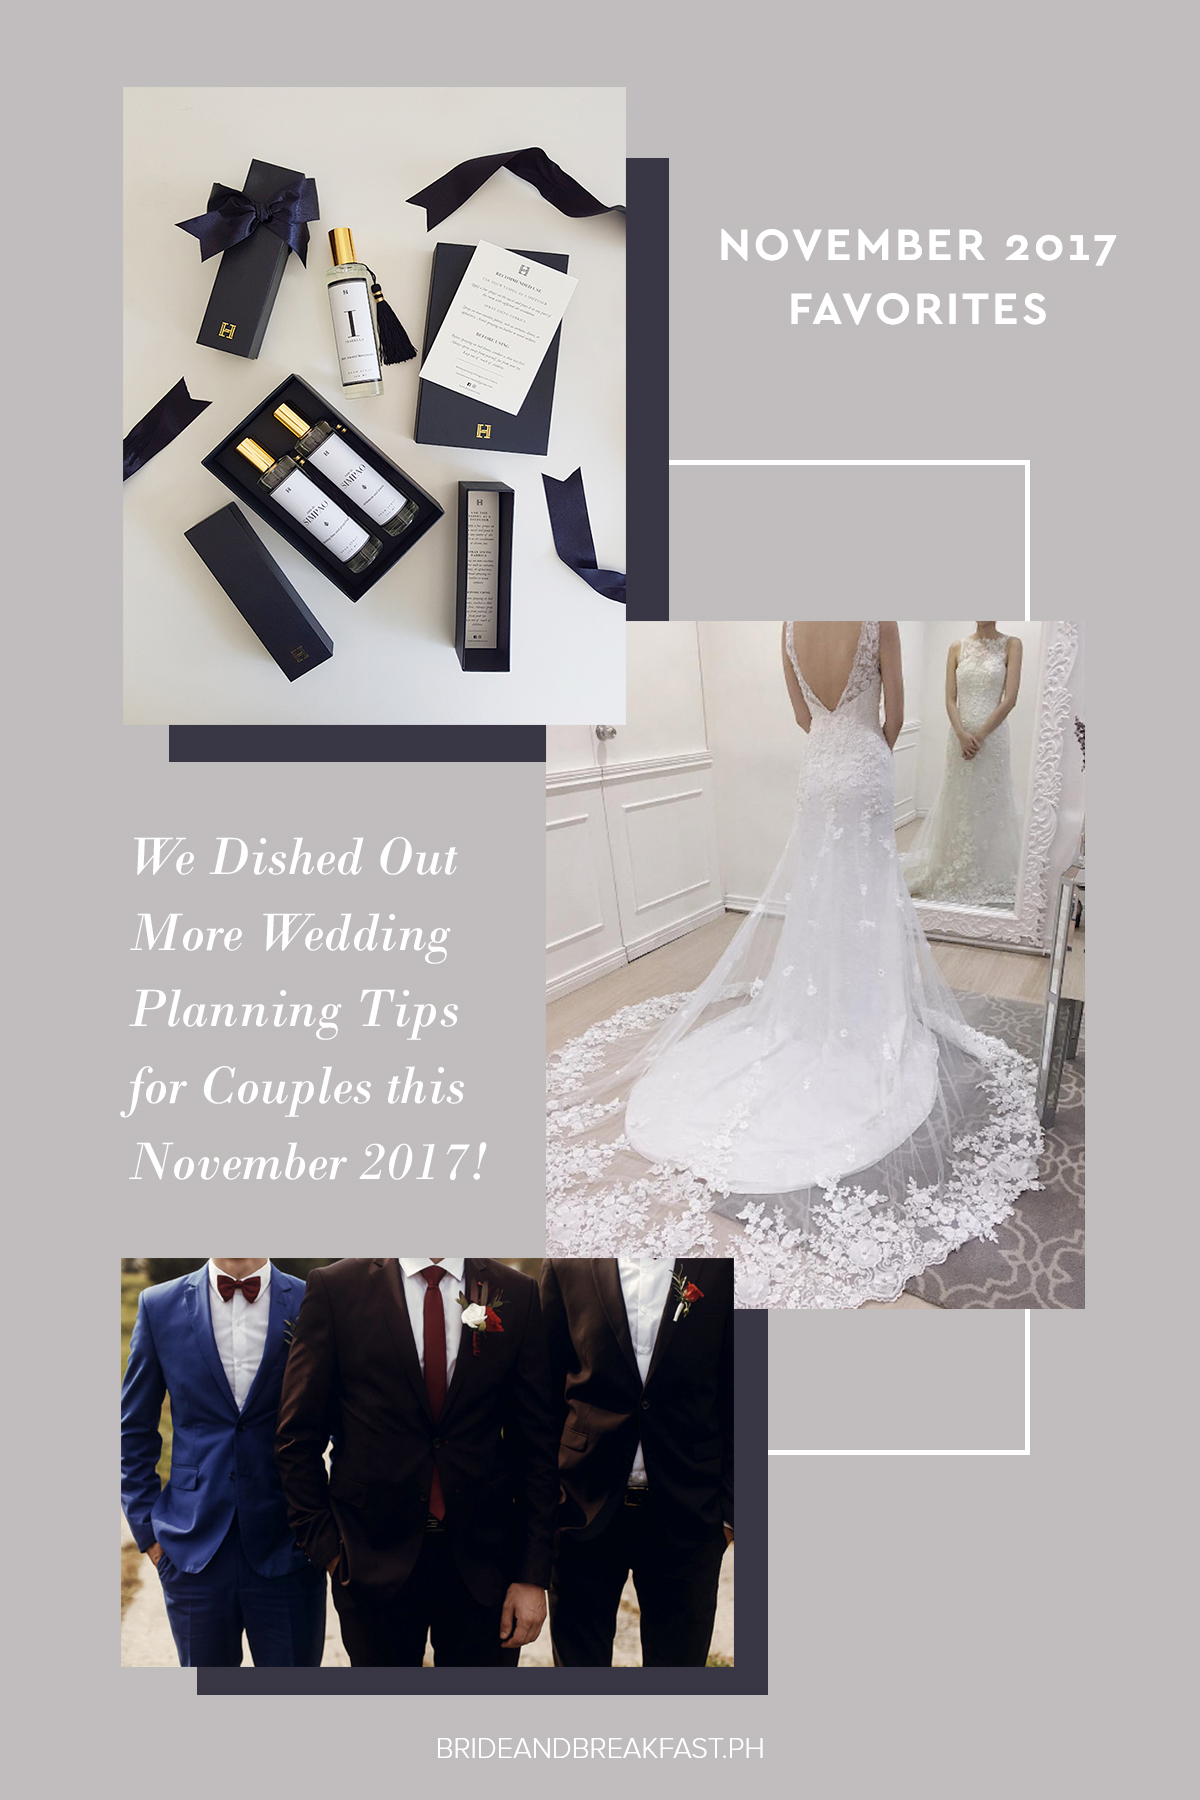 November 2017 site recap philippines wedding blog this november 2017 we gave out more key wedding planning advice to help make the journey more manageable read on below folks junglespirit Images